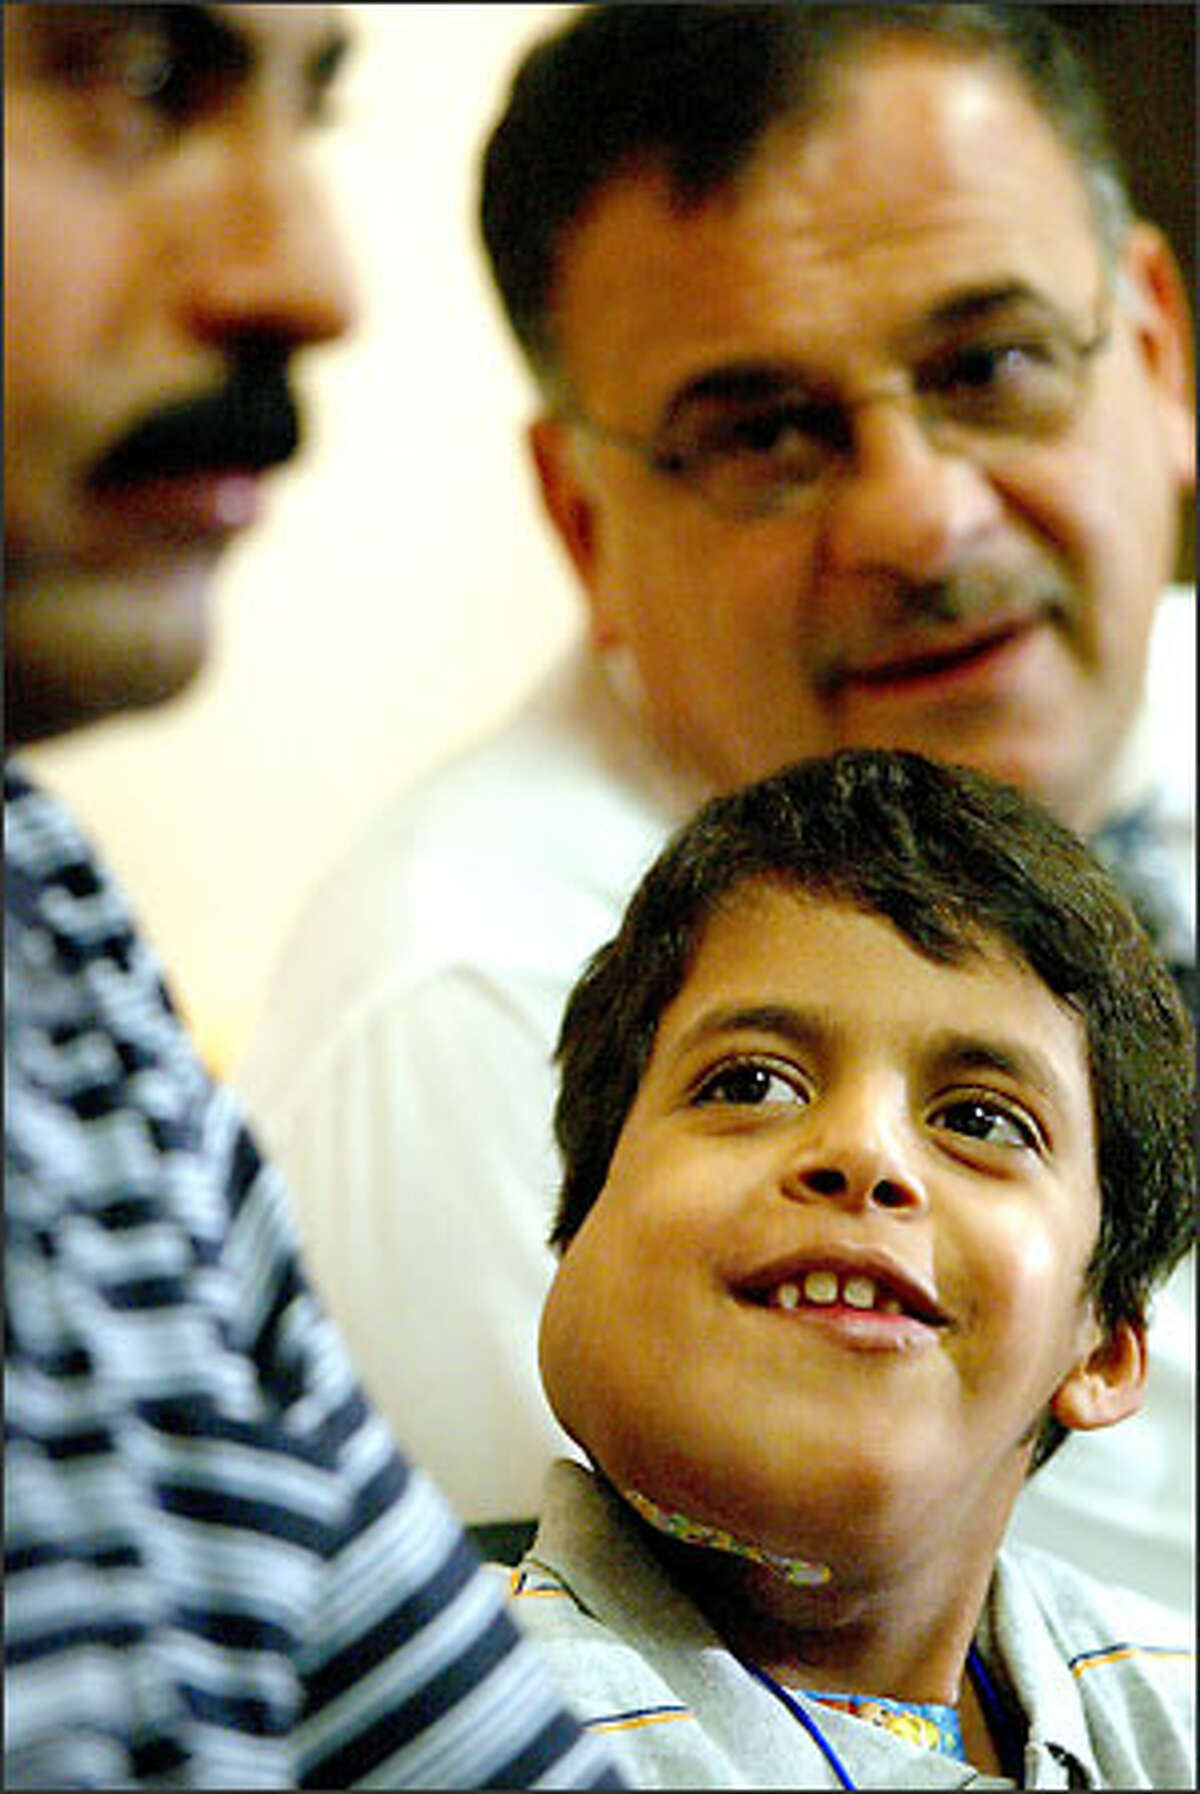 Ali Mousa Souad, 8, listens to Walid Farhoud's translation of a reporter's question for him and waits for his father, Mousa Souad, at left to answer for him.